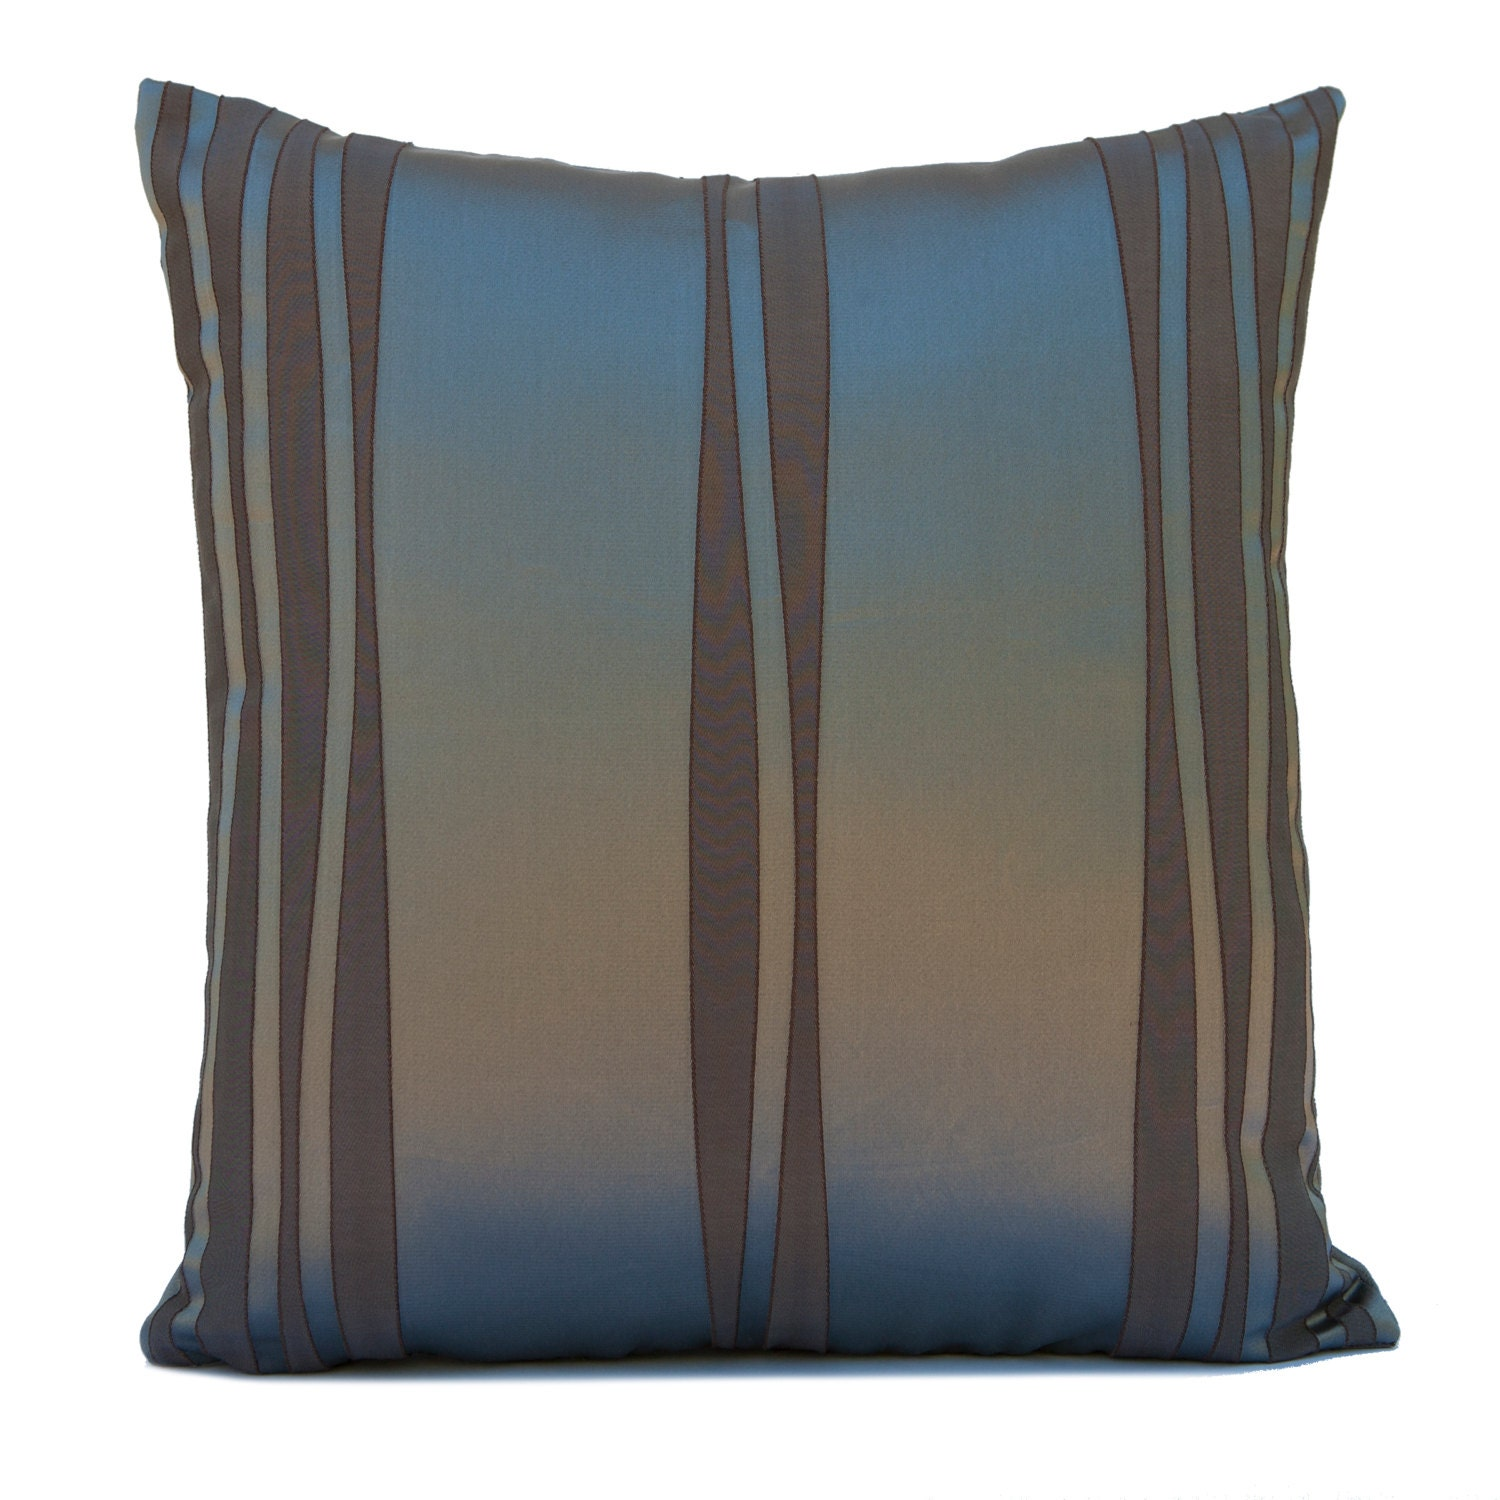 Decorative Pillows With Grey : Grey and Brown Pillow Throw Pillow Cover Decorative Pillow